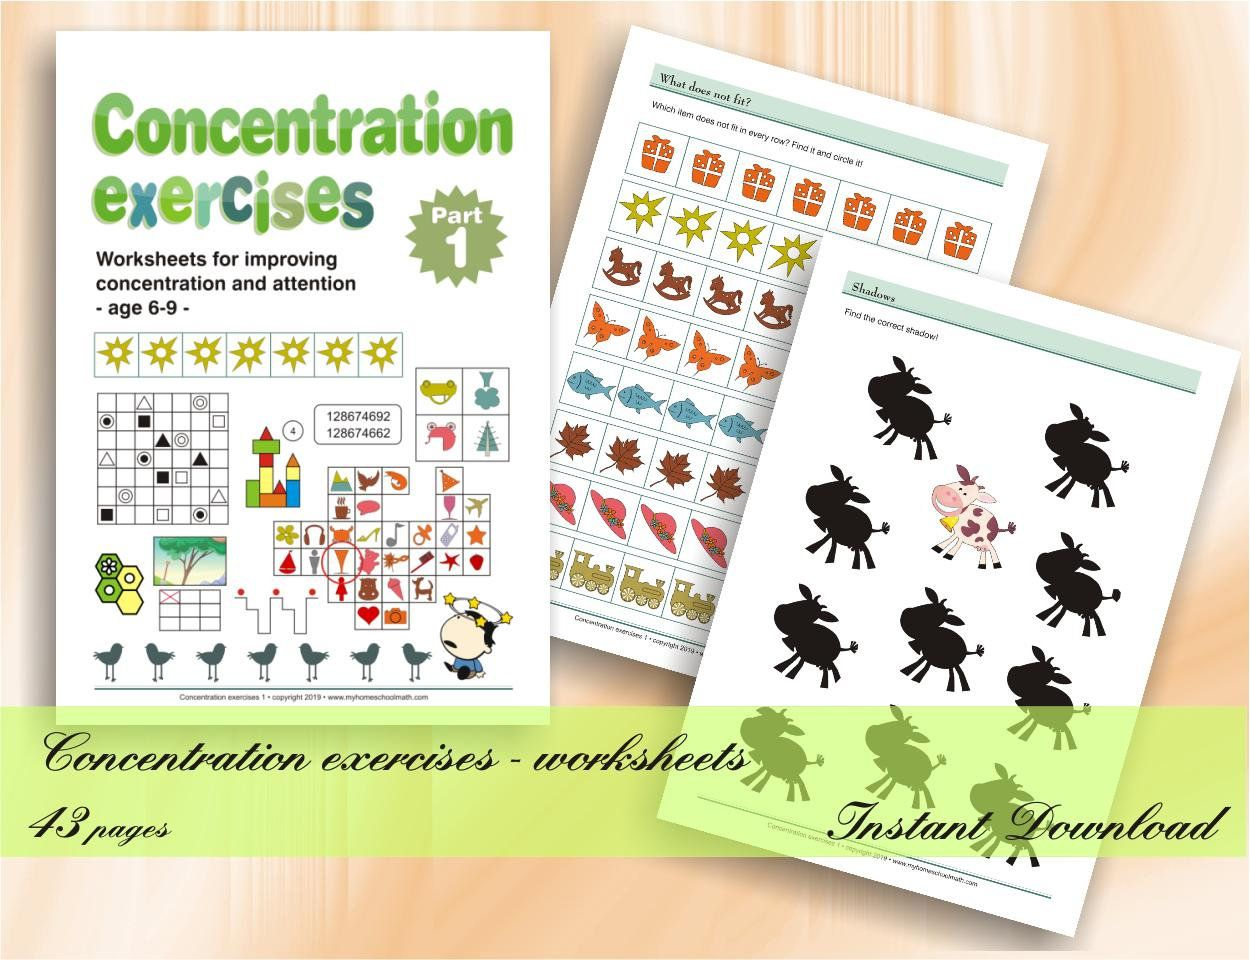 Concentration Exercises For Kids Part 1 Age 6 9 43 Printable Worksheets With Solutions Download Digital Printable Workbook Exercise For Kids Printable Worksheets Free Printable Activities [ 960 x 1250 Pixel ]